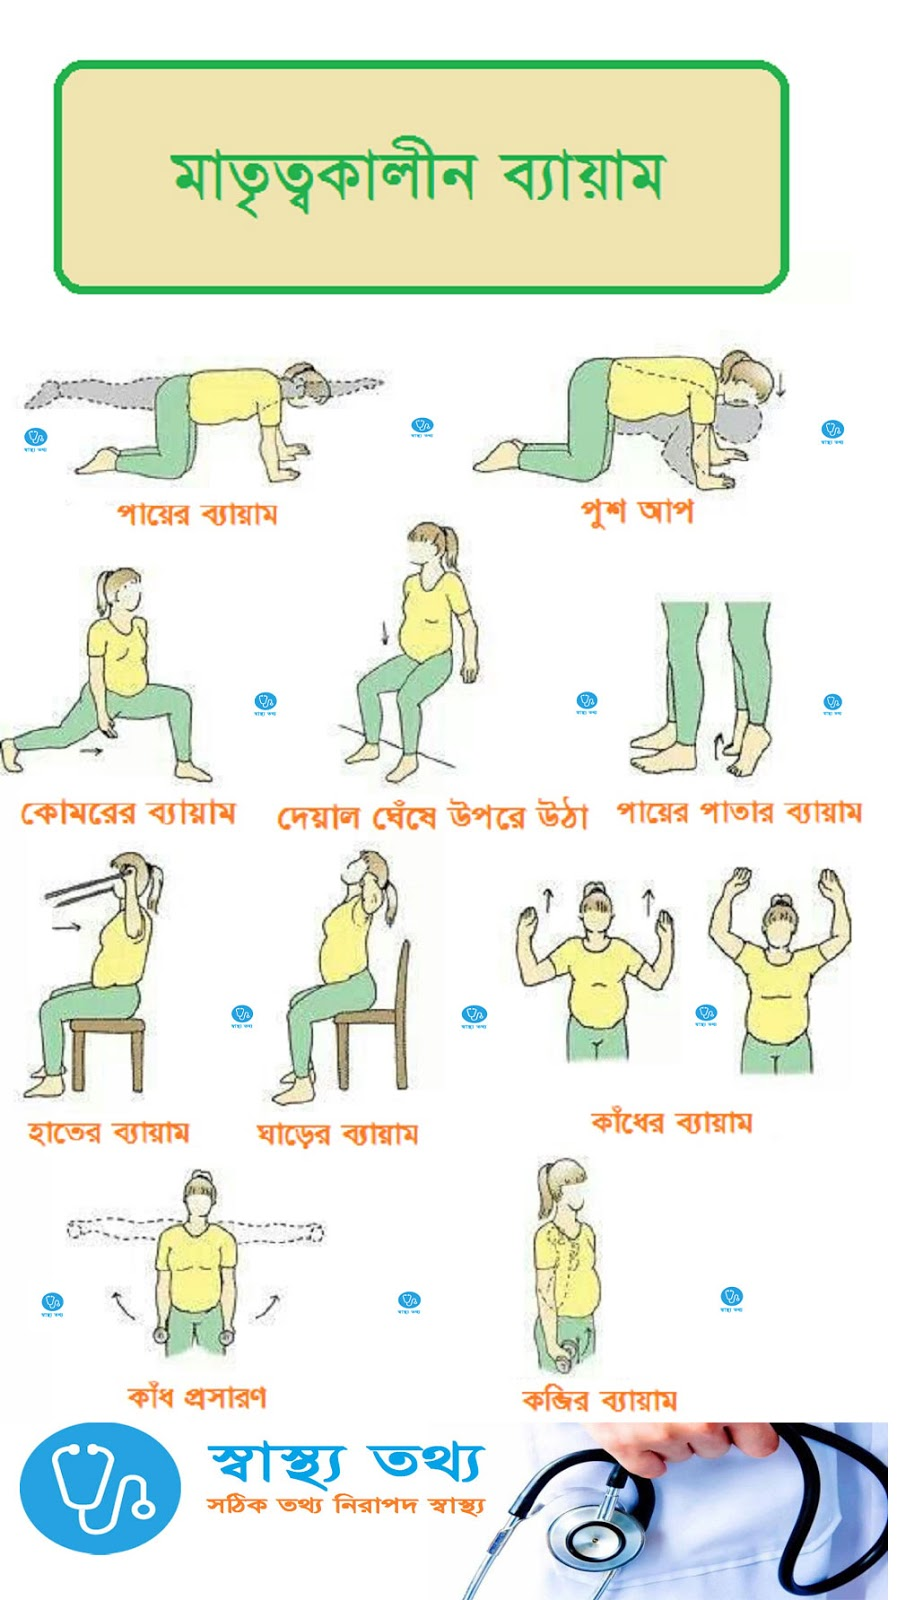 exercises during pregnency bengali,fasting during pregnancy in Bengali, fasting during pregnancy,fasting during pregnancy third trimester in islam,fasting during pregnancy in quran,fasting during pregnancy in islam,fasting during pregnancy second trimester,fasting during pregnancy first trimester,fasting during pregnancy third trimester,fasting during pregnancy in Ramadan,fasting during pregnancy islamqa,fasting during pregnancy for glucose test